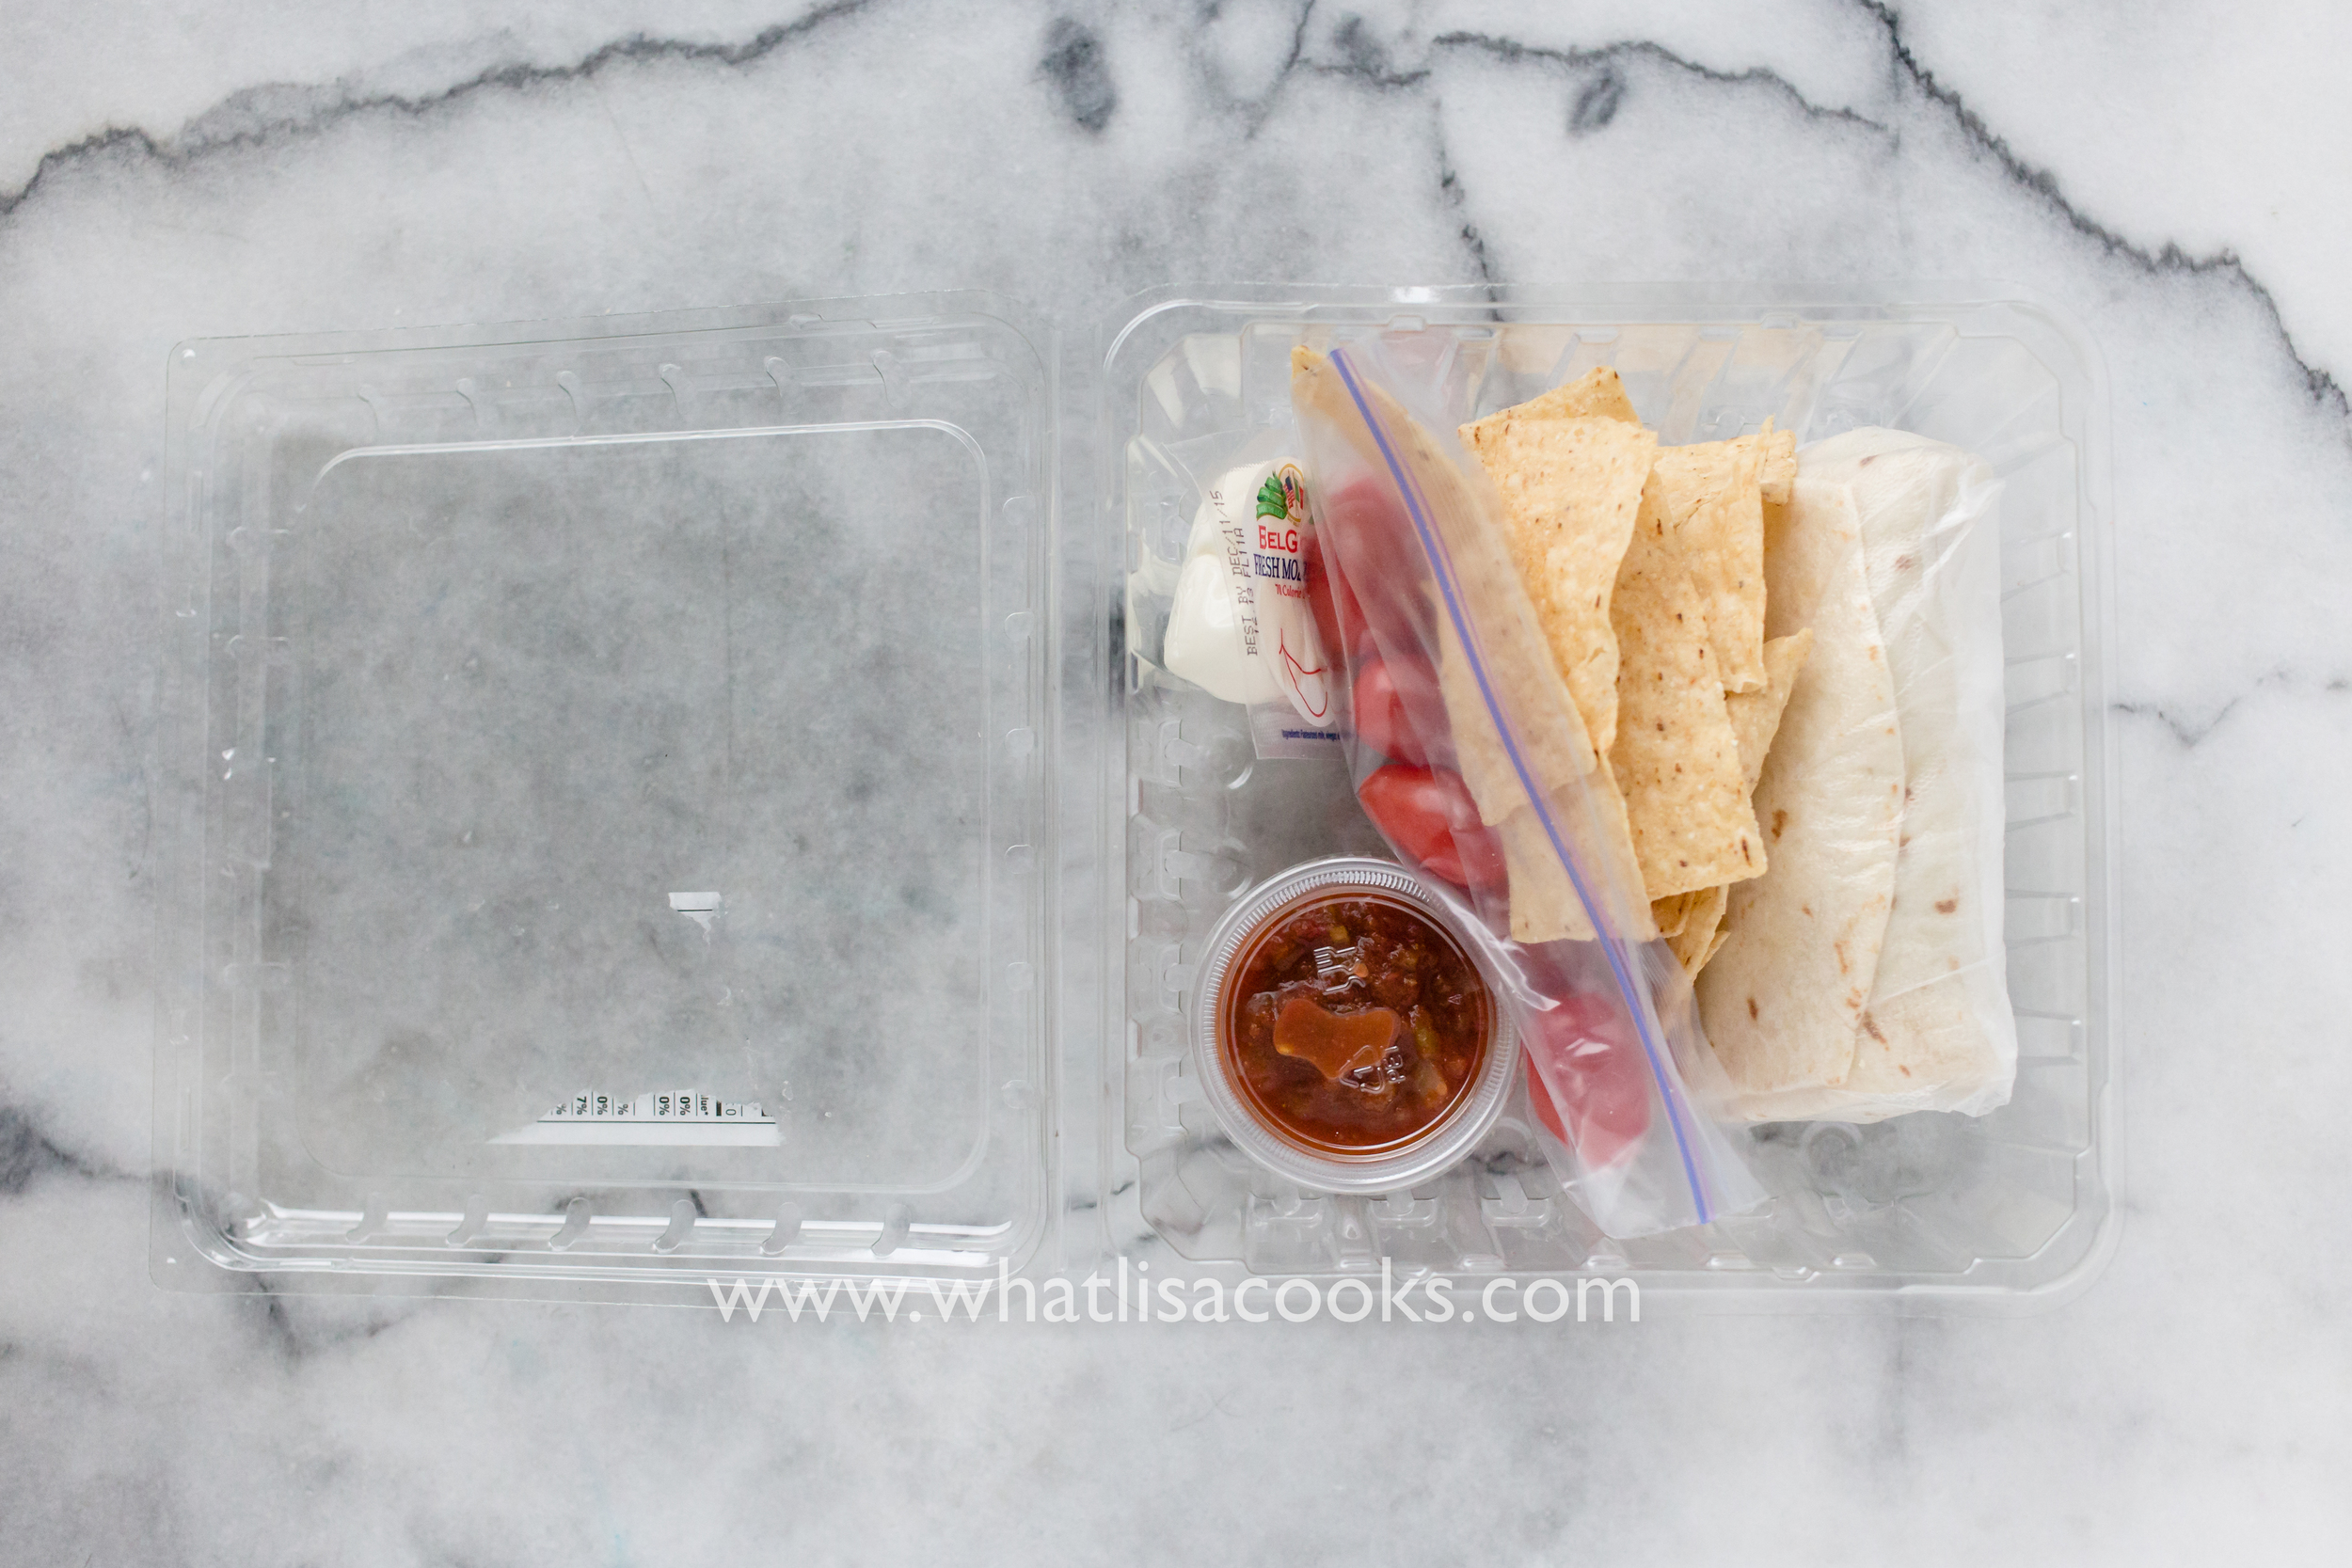 Packed lunch to-go for a school field trip | WhatLisaCooks.com